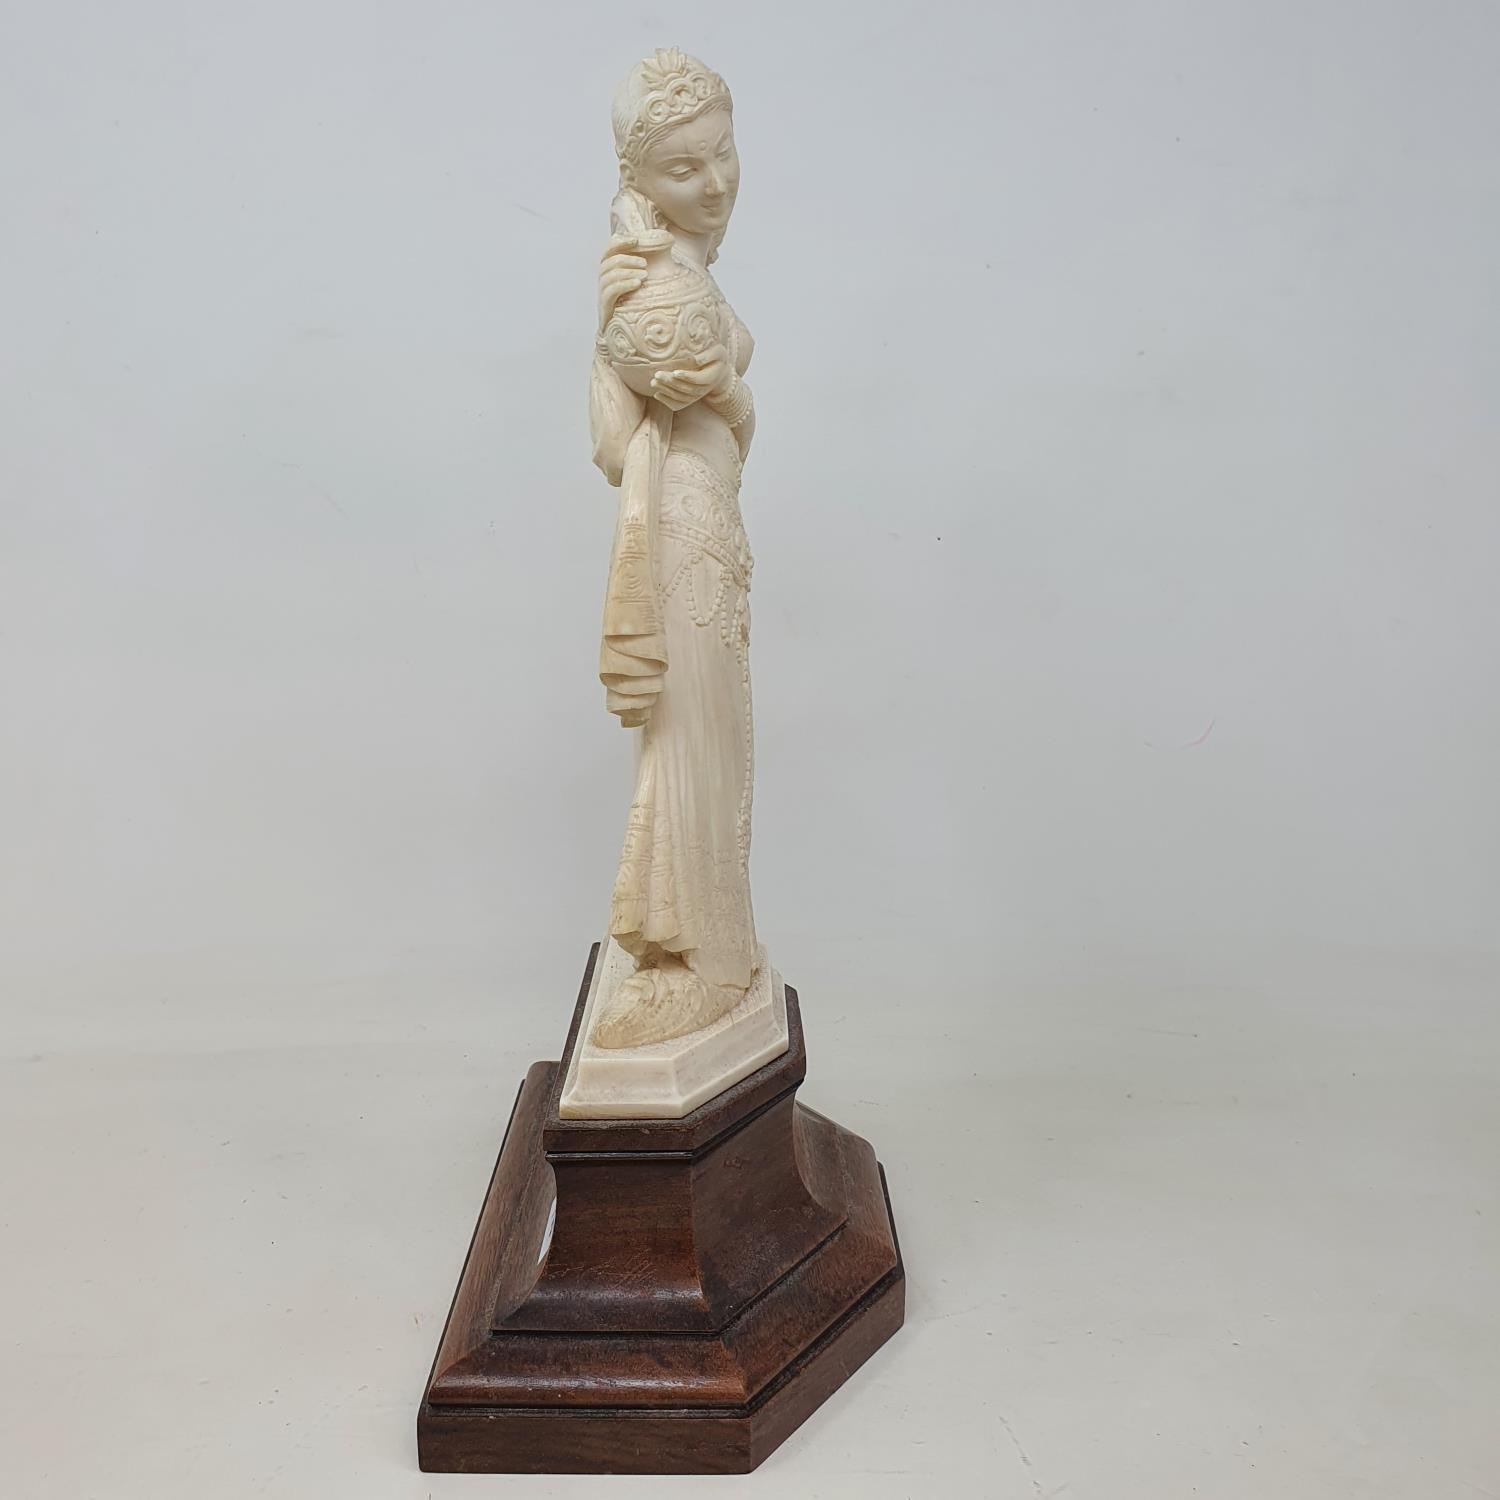 An early 20th century Indian carved ivory figure, of a woman holding a vase, on a wooden base, 28 cm - Image 2 of 4